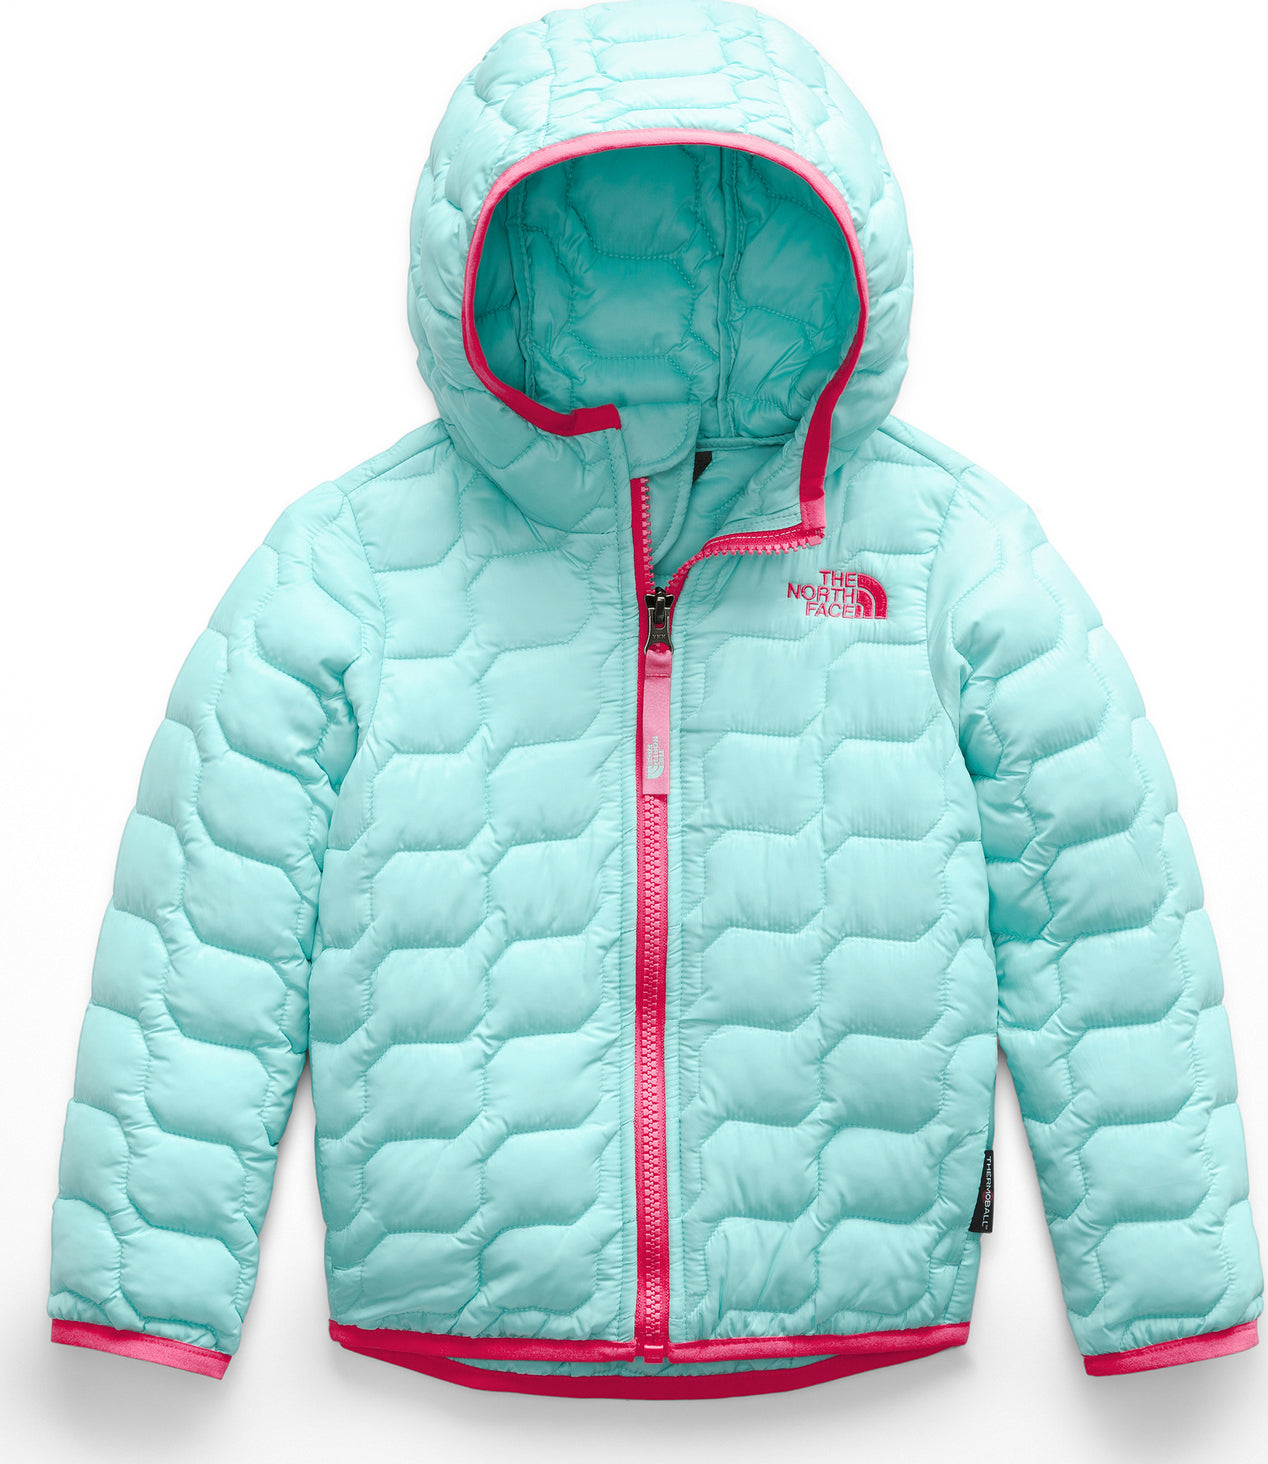 ee7df5742 The North Face ThermoBall Hoodie - Toddler